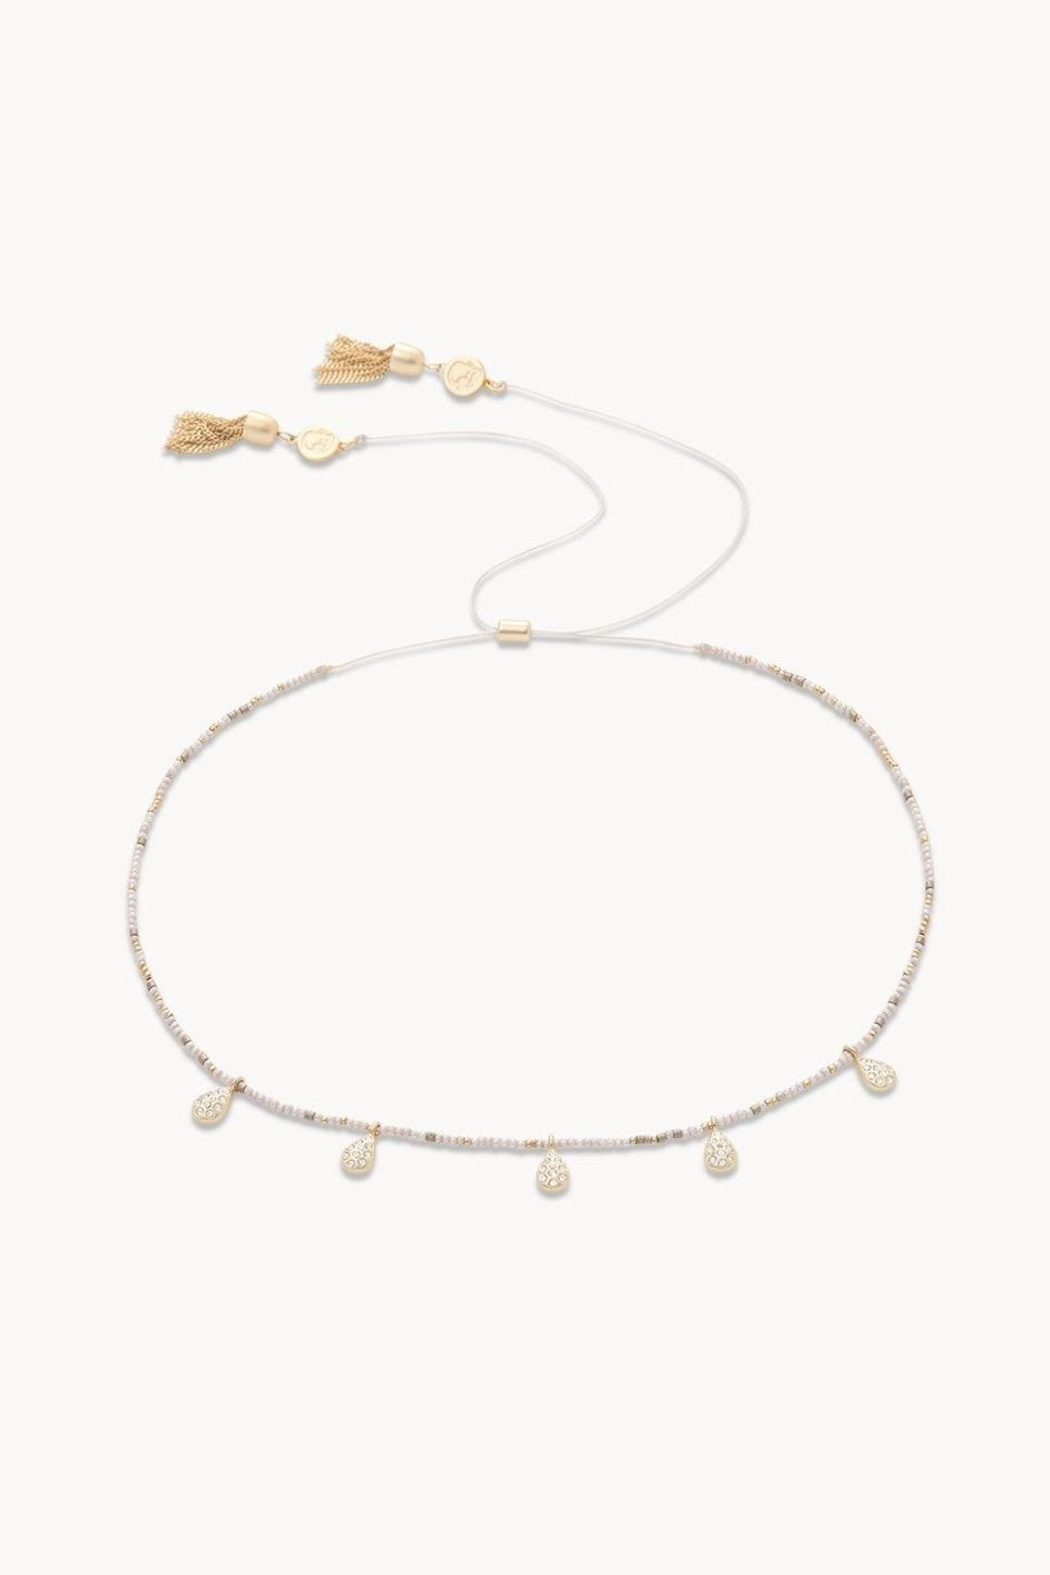 Spartina 449 Beaded Reversible Choker - Main Image